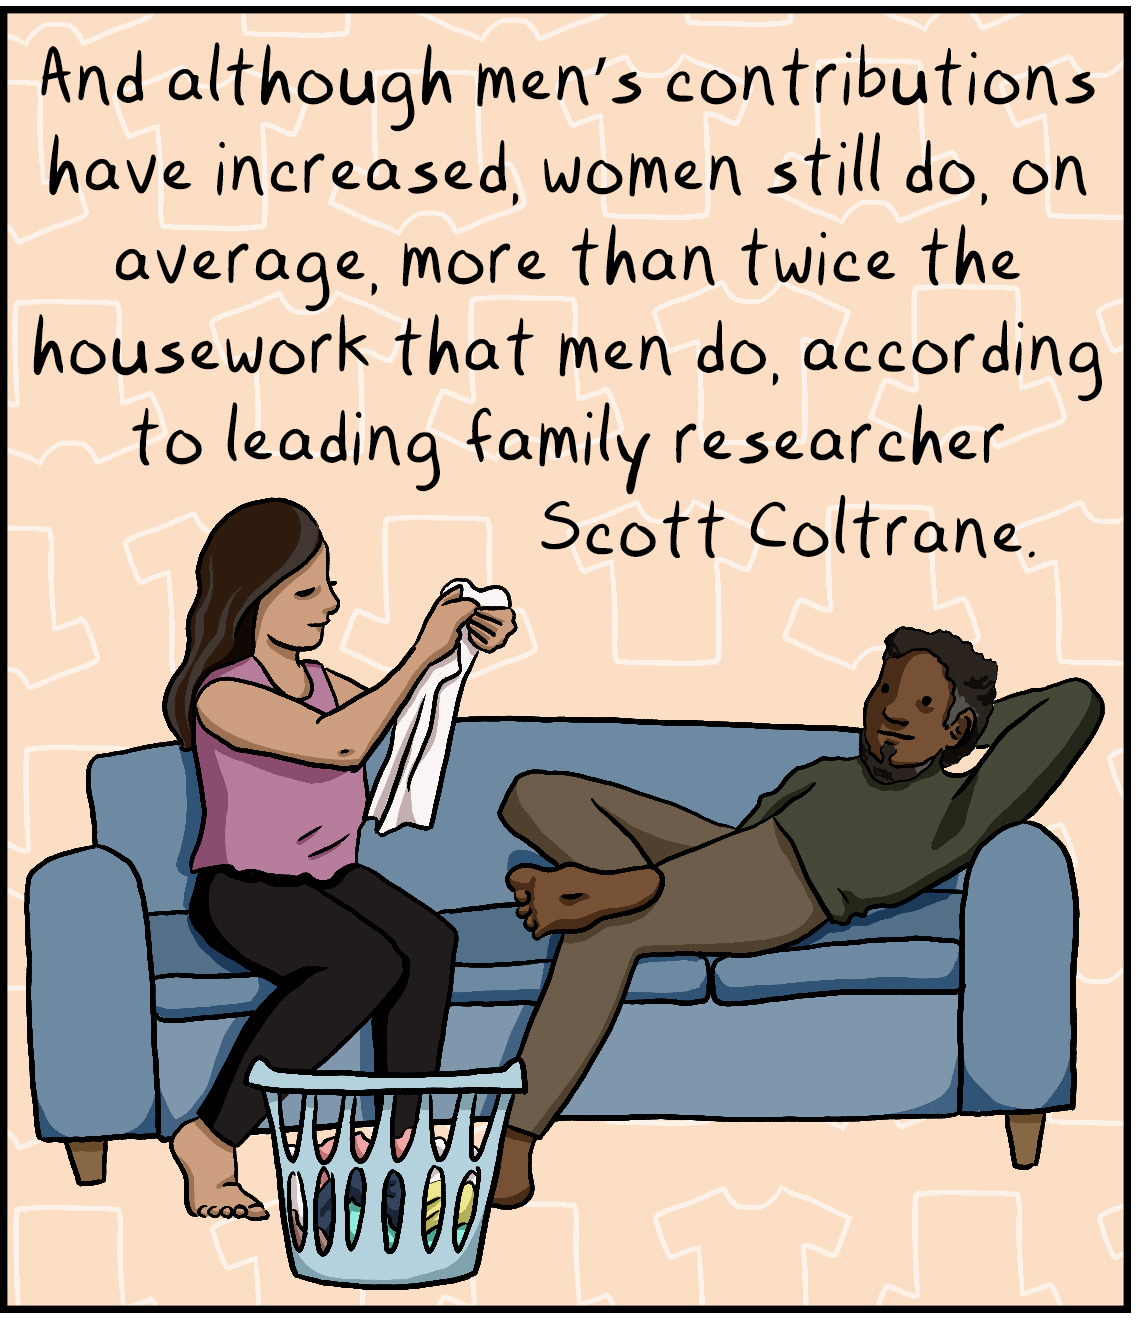 And although men's contributions have increased, women still do, on average, more than twice the housework that men do, according to leading family researcher Scott Coltrane.